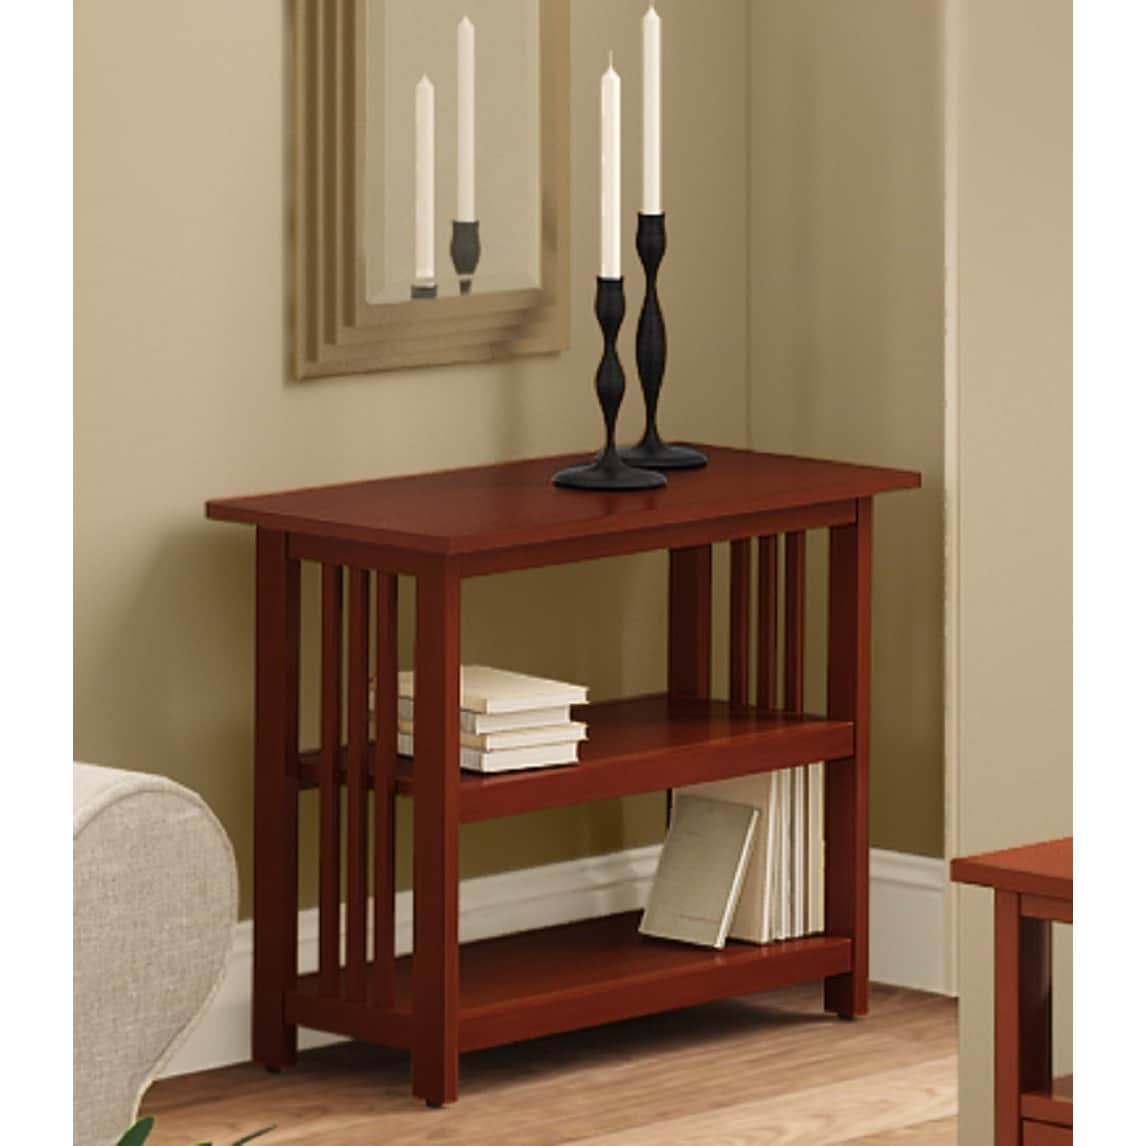 Copper Grove Boutwell Classic Mission Style Under Window Bookshelf